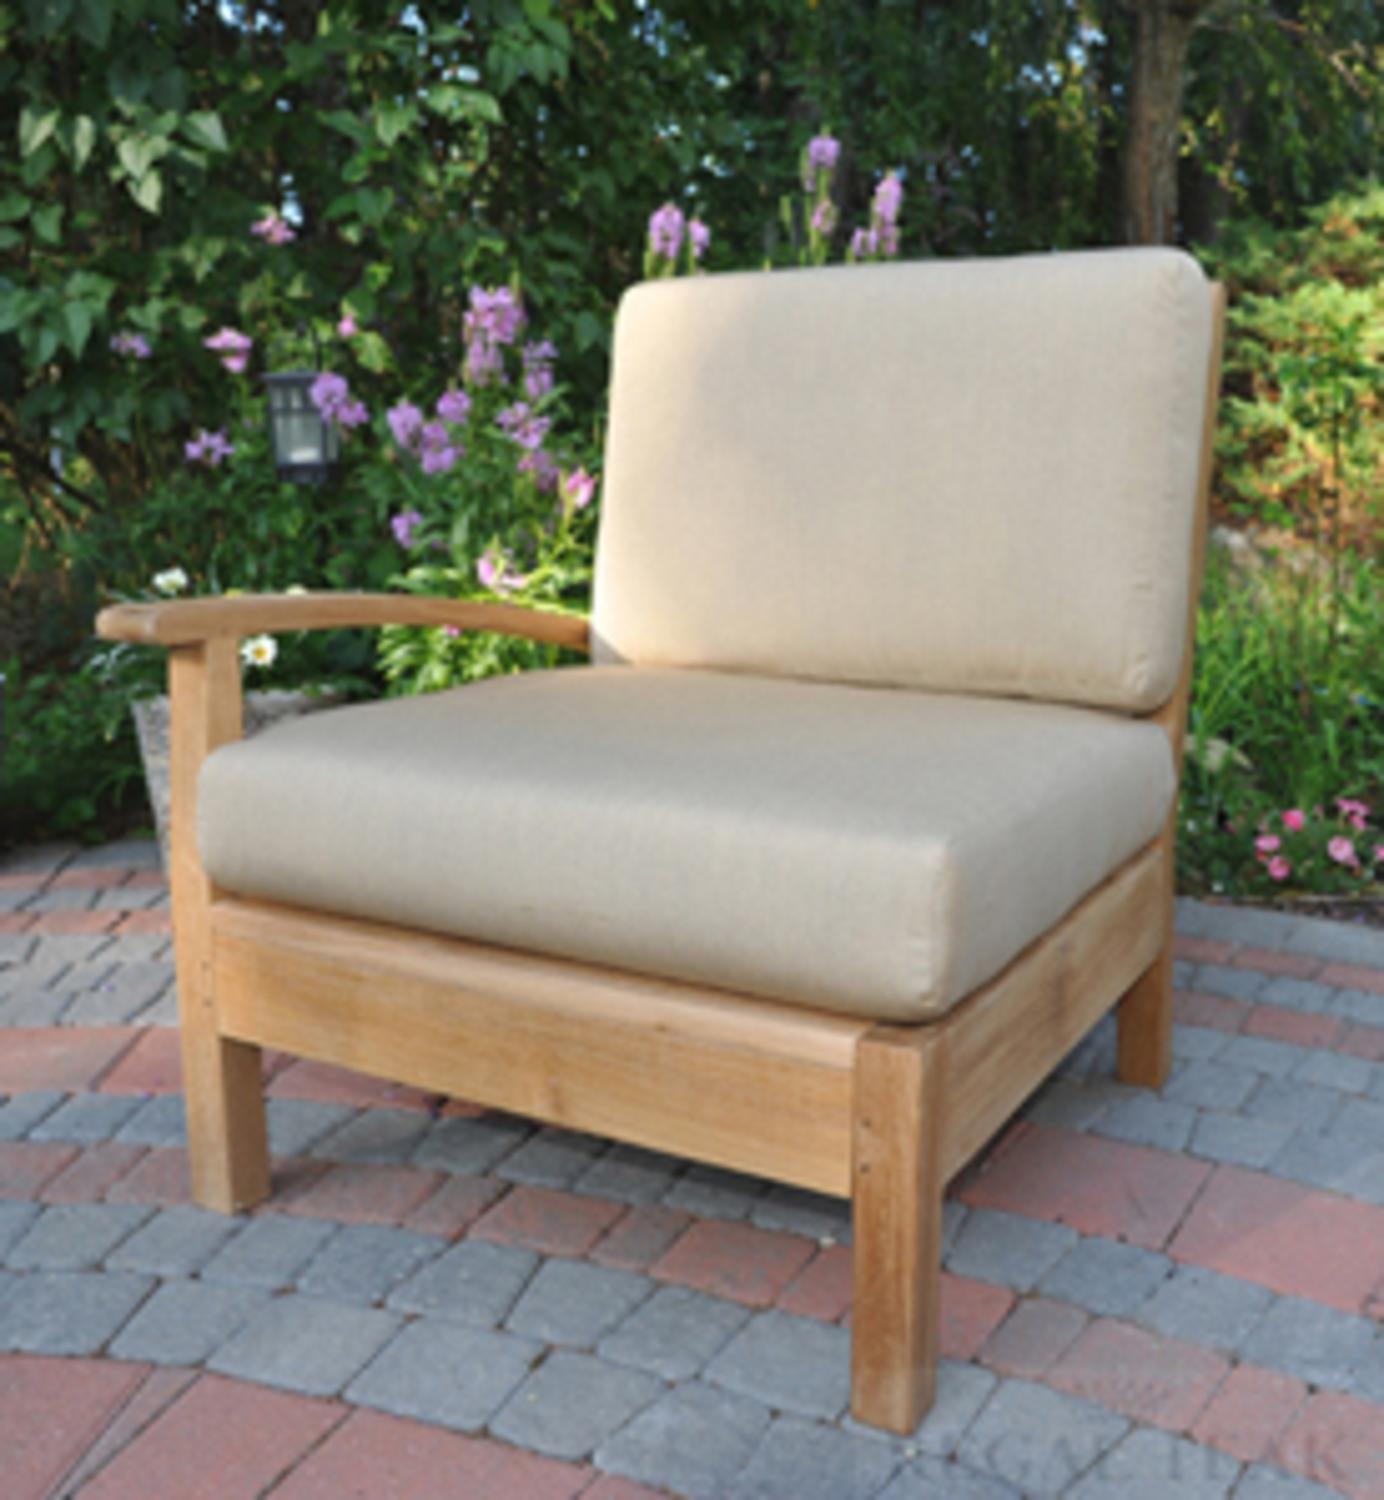 "35"" Natural Teak Sectional Right Arm Seating Outdoor Chair with Canvas Cushions"